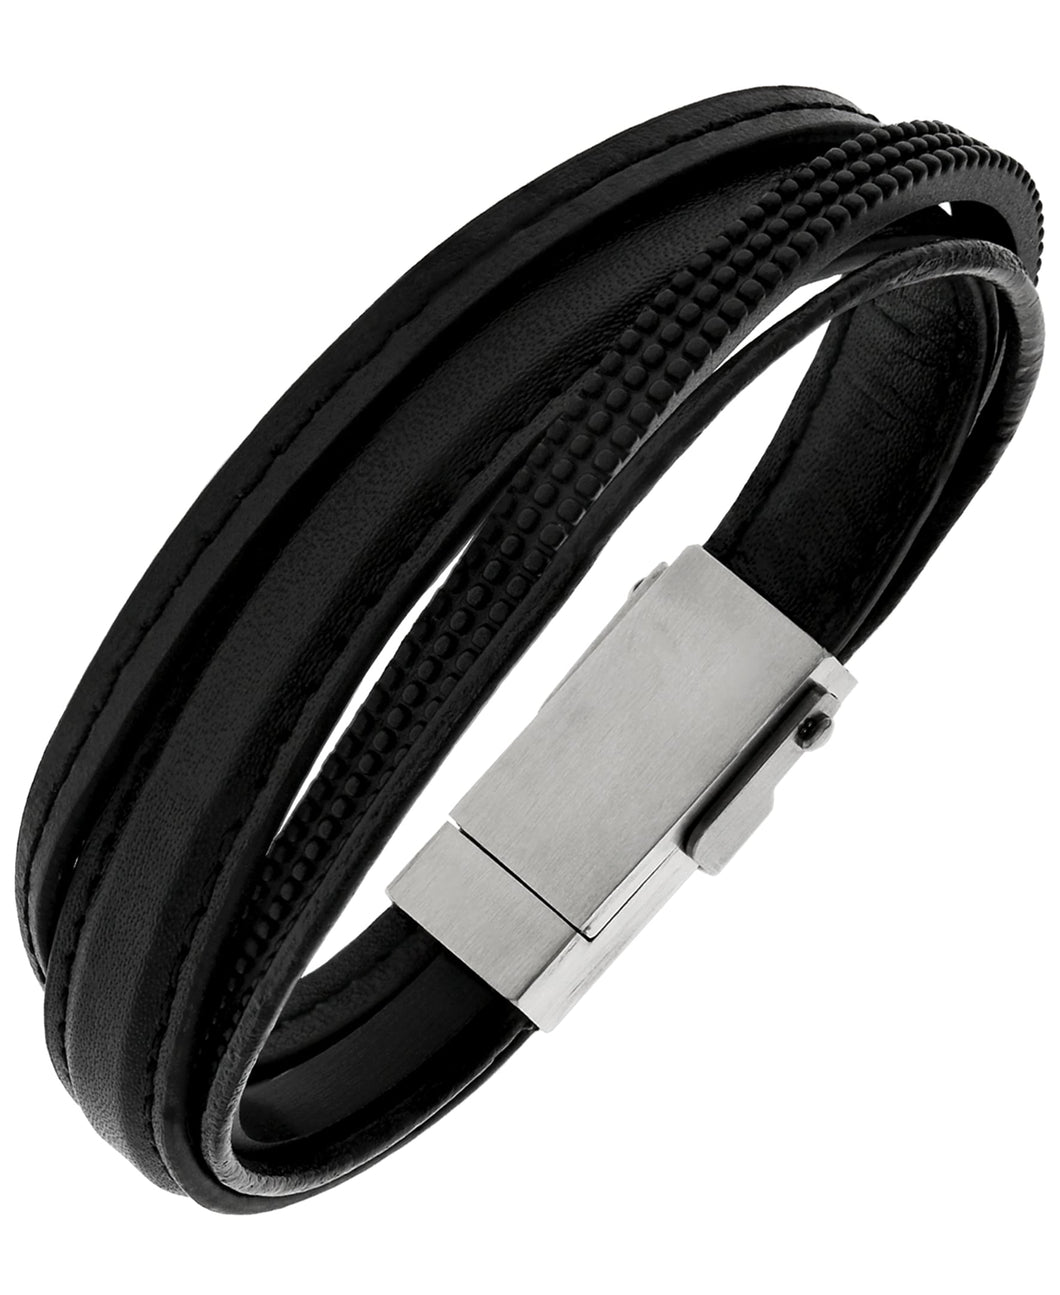 Sutton Multi-Strand Leather and Lightening Cable Bracelet with USB Clasp